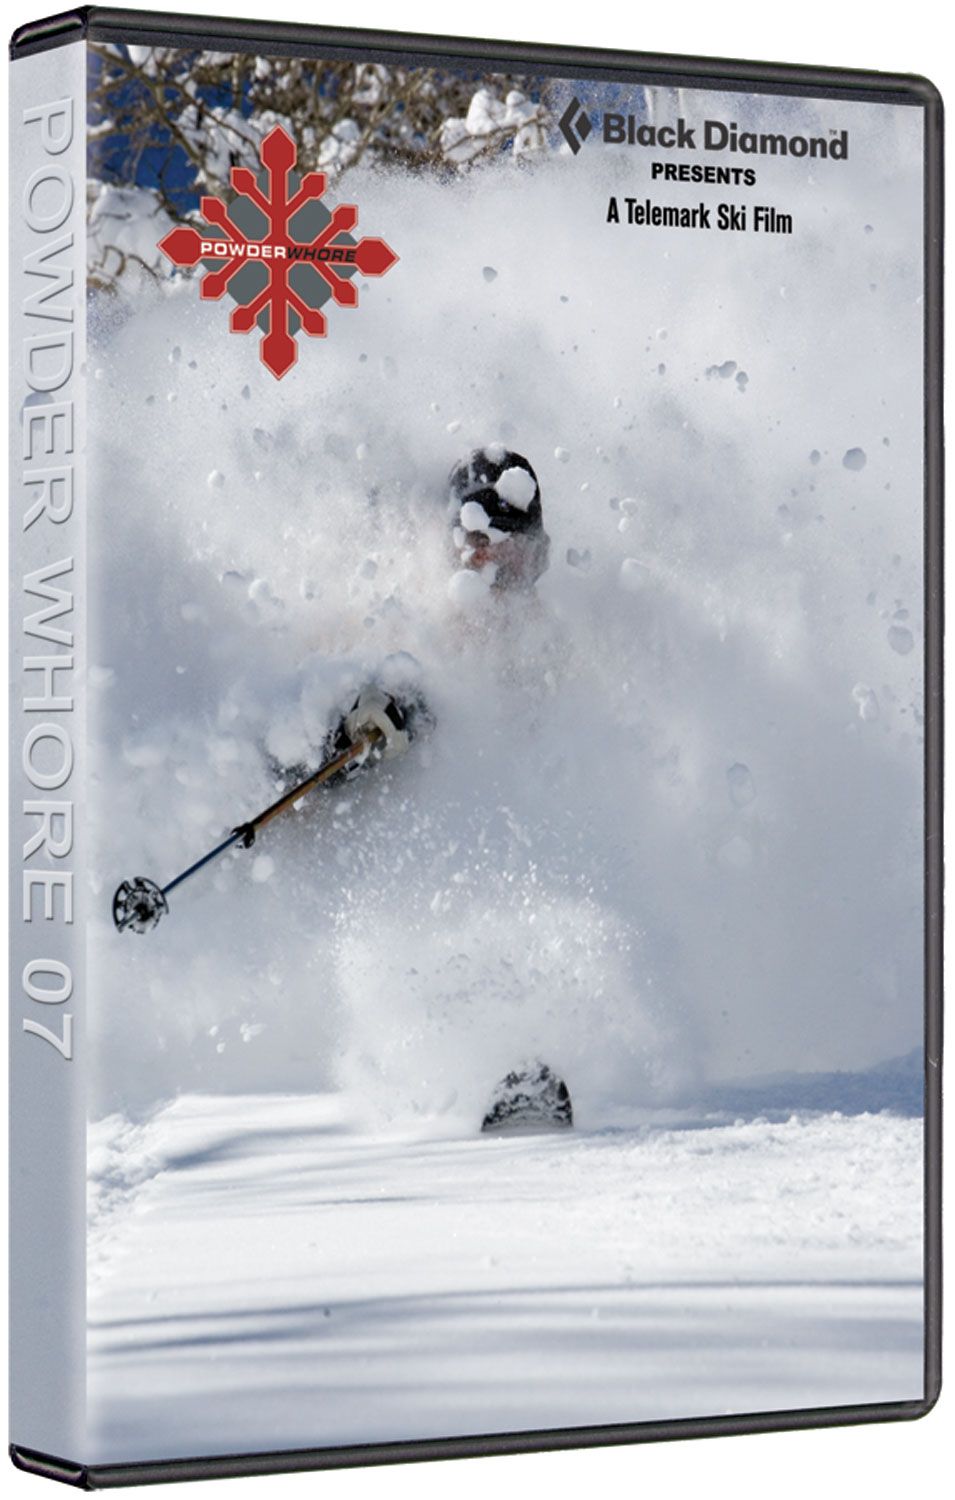 Ski The PW07 Tele Ski Dvd - Featuring: Darrell Finlayson, Andy Rosenberg, Will Cardamone, Charlie Cannon, Andy Jacobsen, Misha Zitkova, Dave Stratton, Johan Howell, Nick De Vore, Noah Howell and Sam Cox Footage. Total Running: 49min.Producer: POWDERWHORE PRODUCTIONS - $2.95